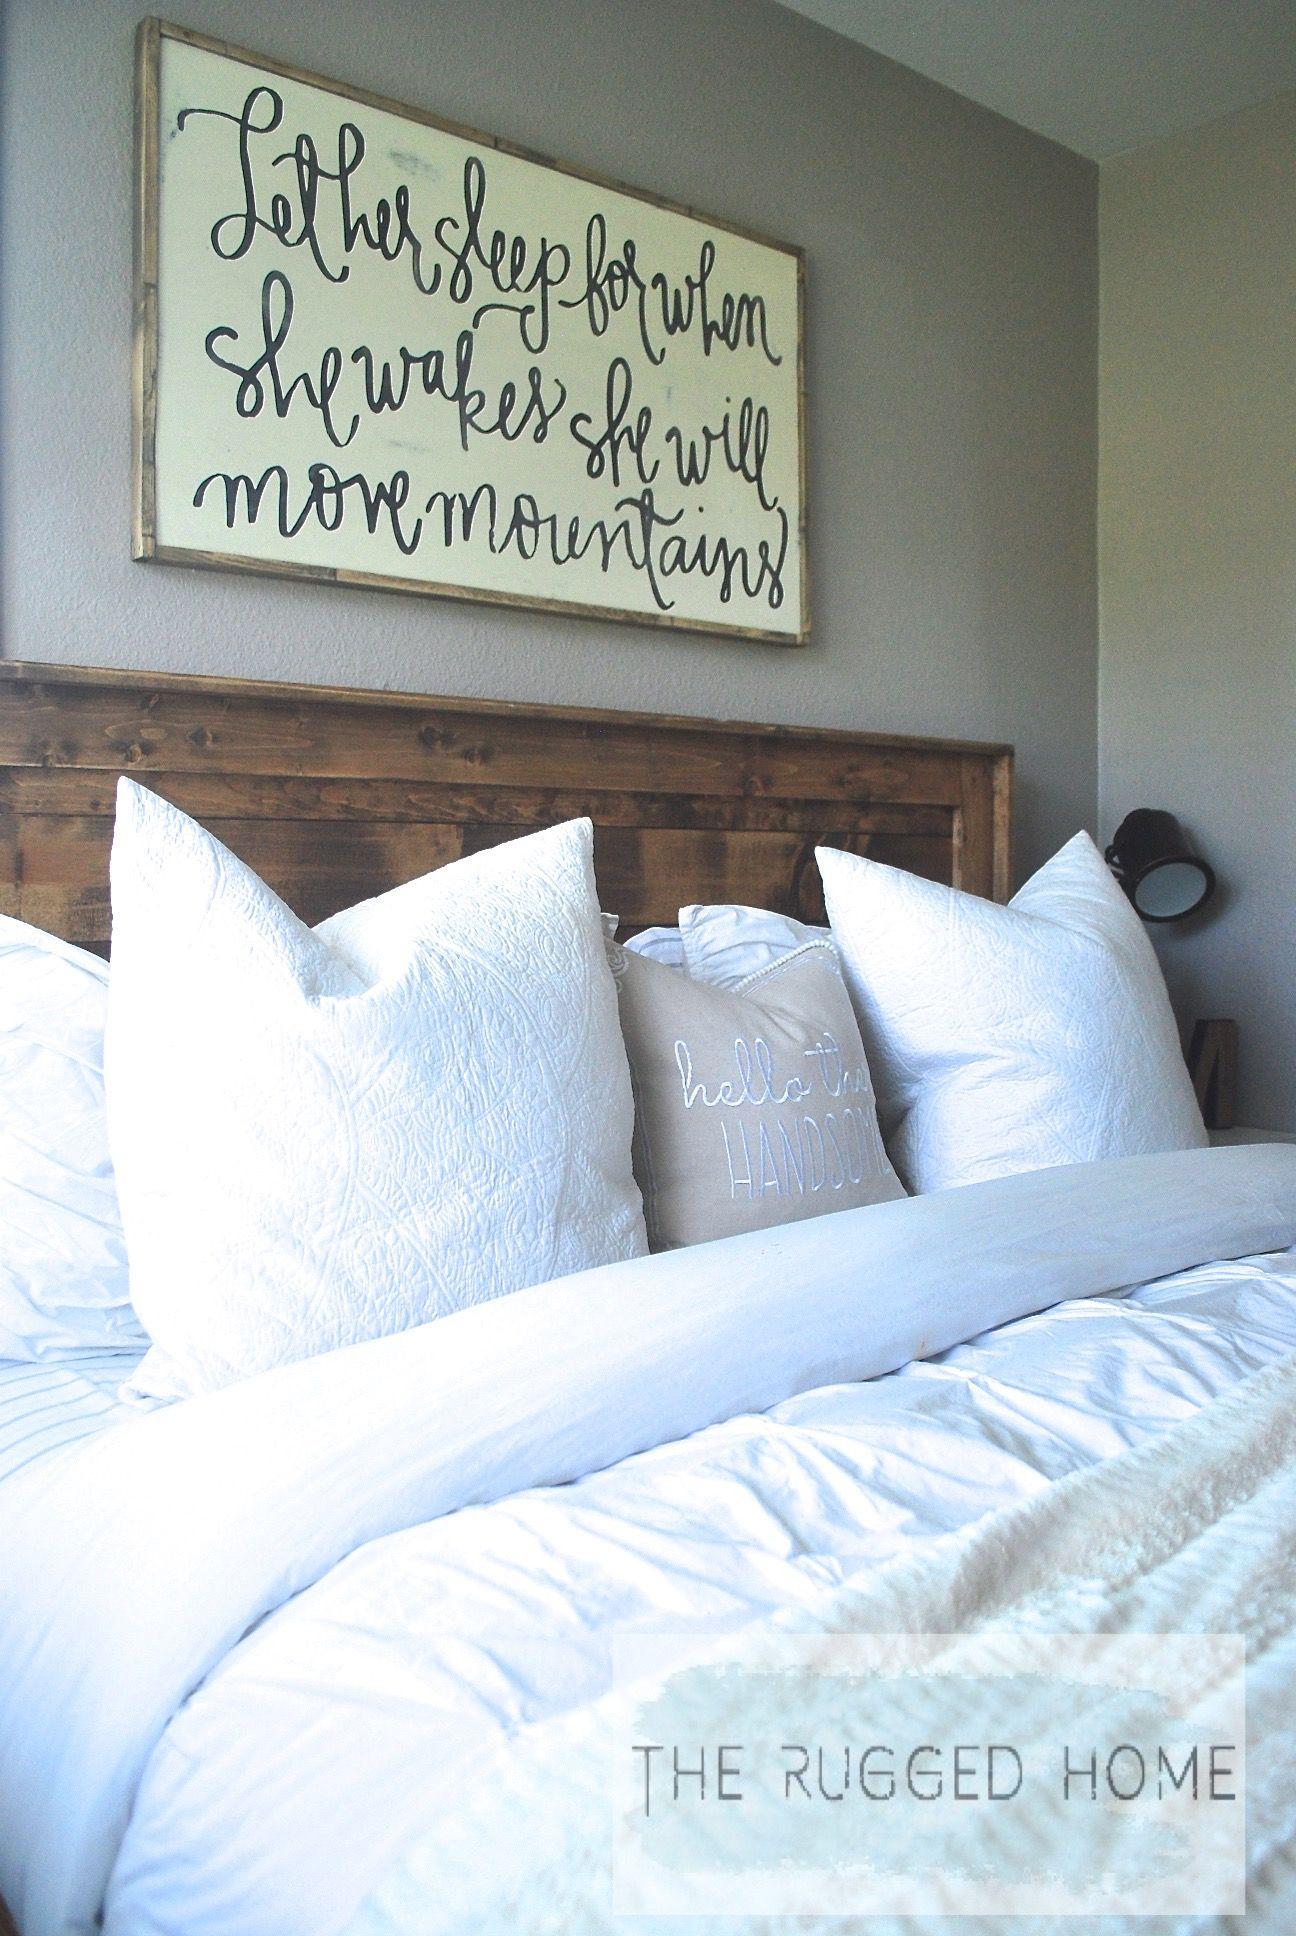 farmhouse master bedroom signs on farmhouse master bedroom reveal the rugged rooster bedroom decor inspiration remodel bedroom master bedrooms decor farmhouse master bedroom reveal the